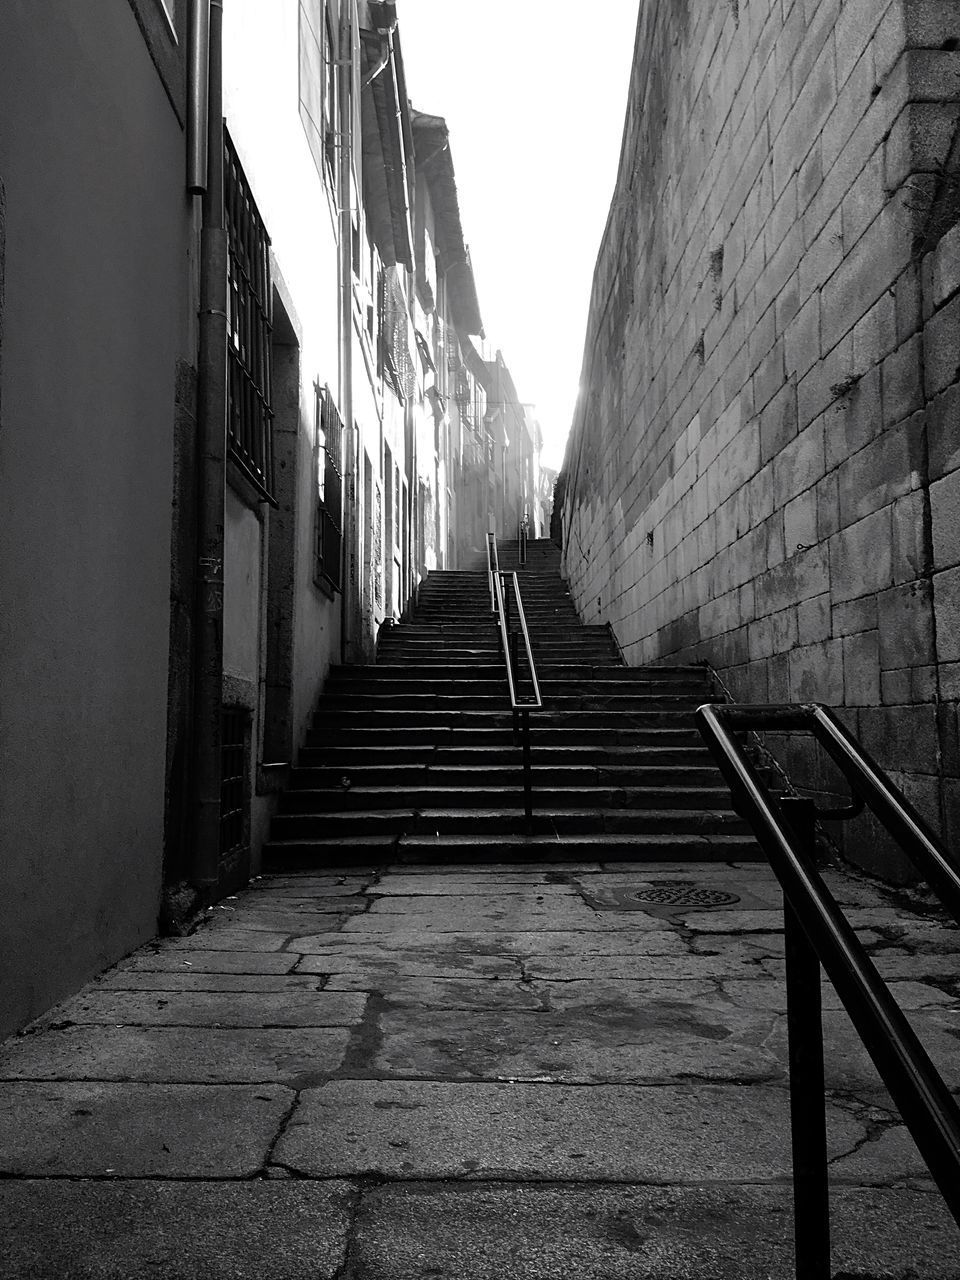 built structure, architecture, the way forward, building exterior, railing, steps, outdoors, city, steps and staircases, day, staircase, sky, no people